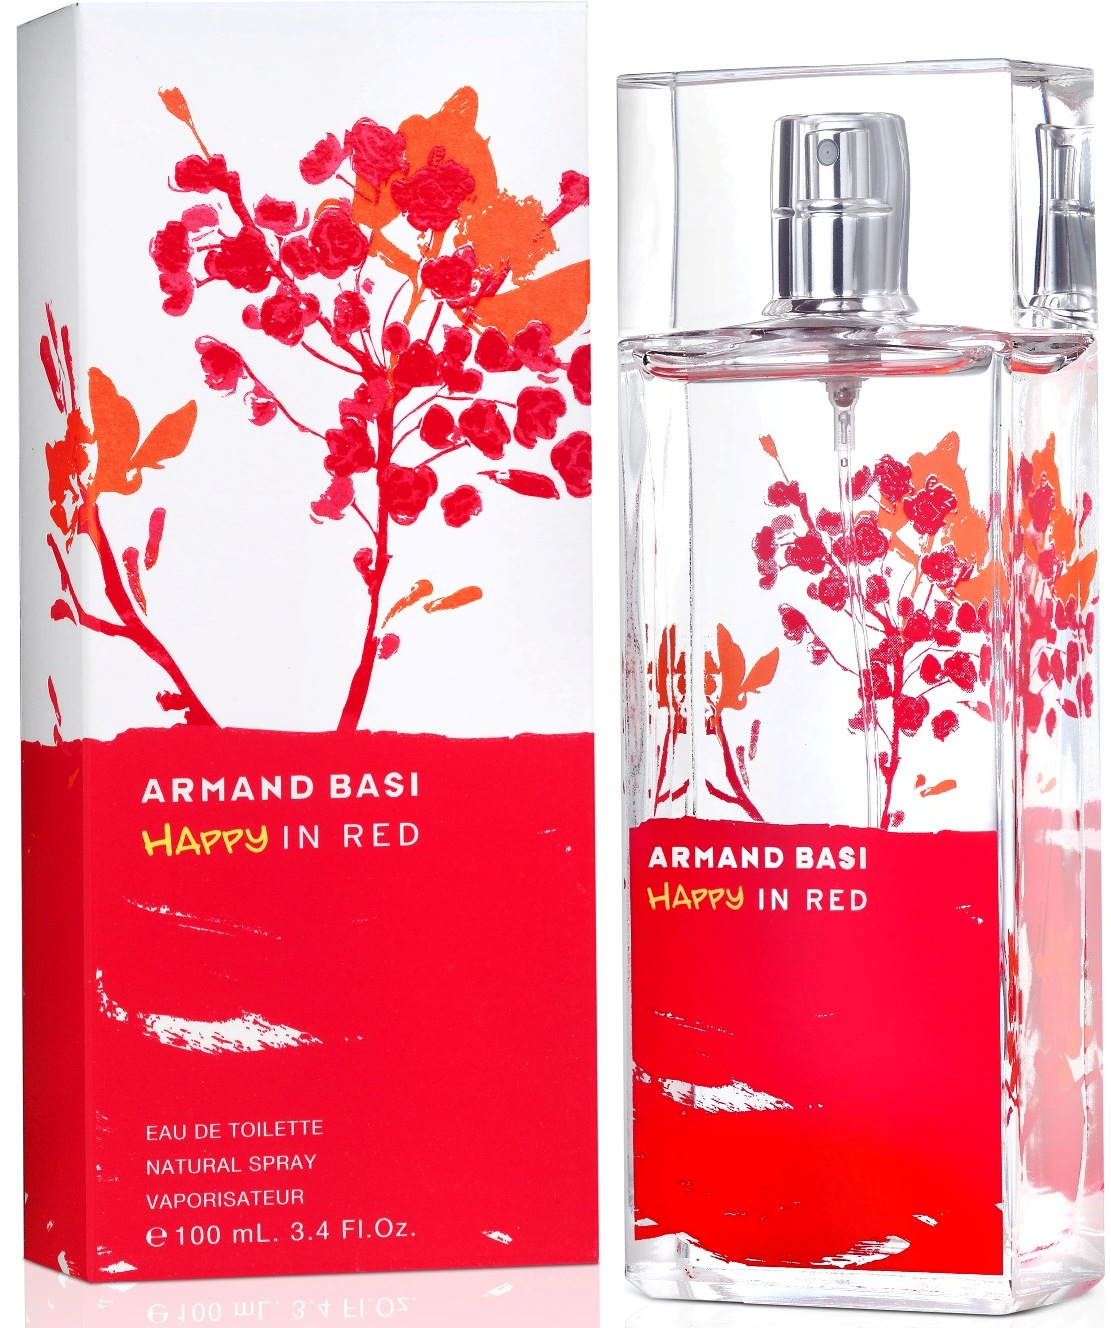 ДЛЯ ЖЕНЩИН Armand Basi Happy in Red EDT 100 ML для женщин